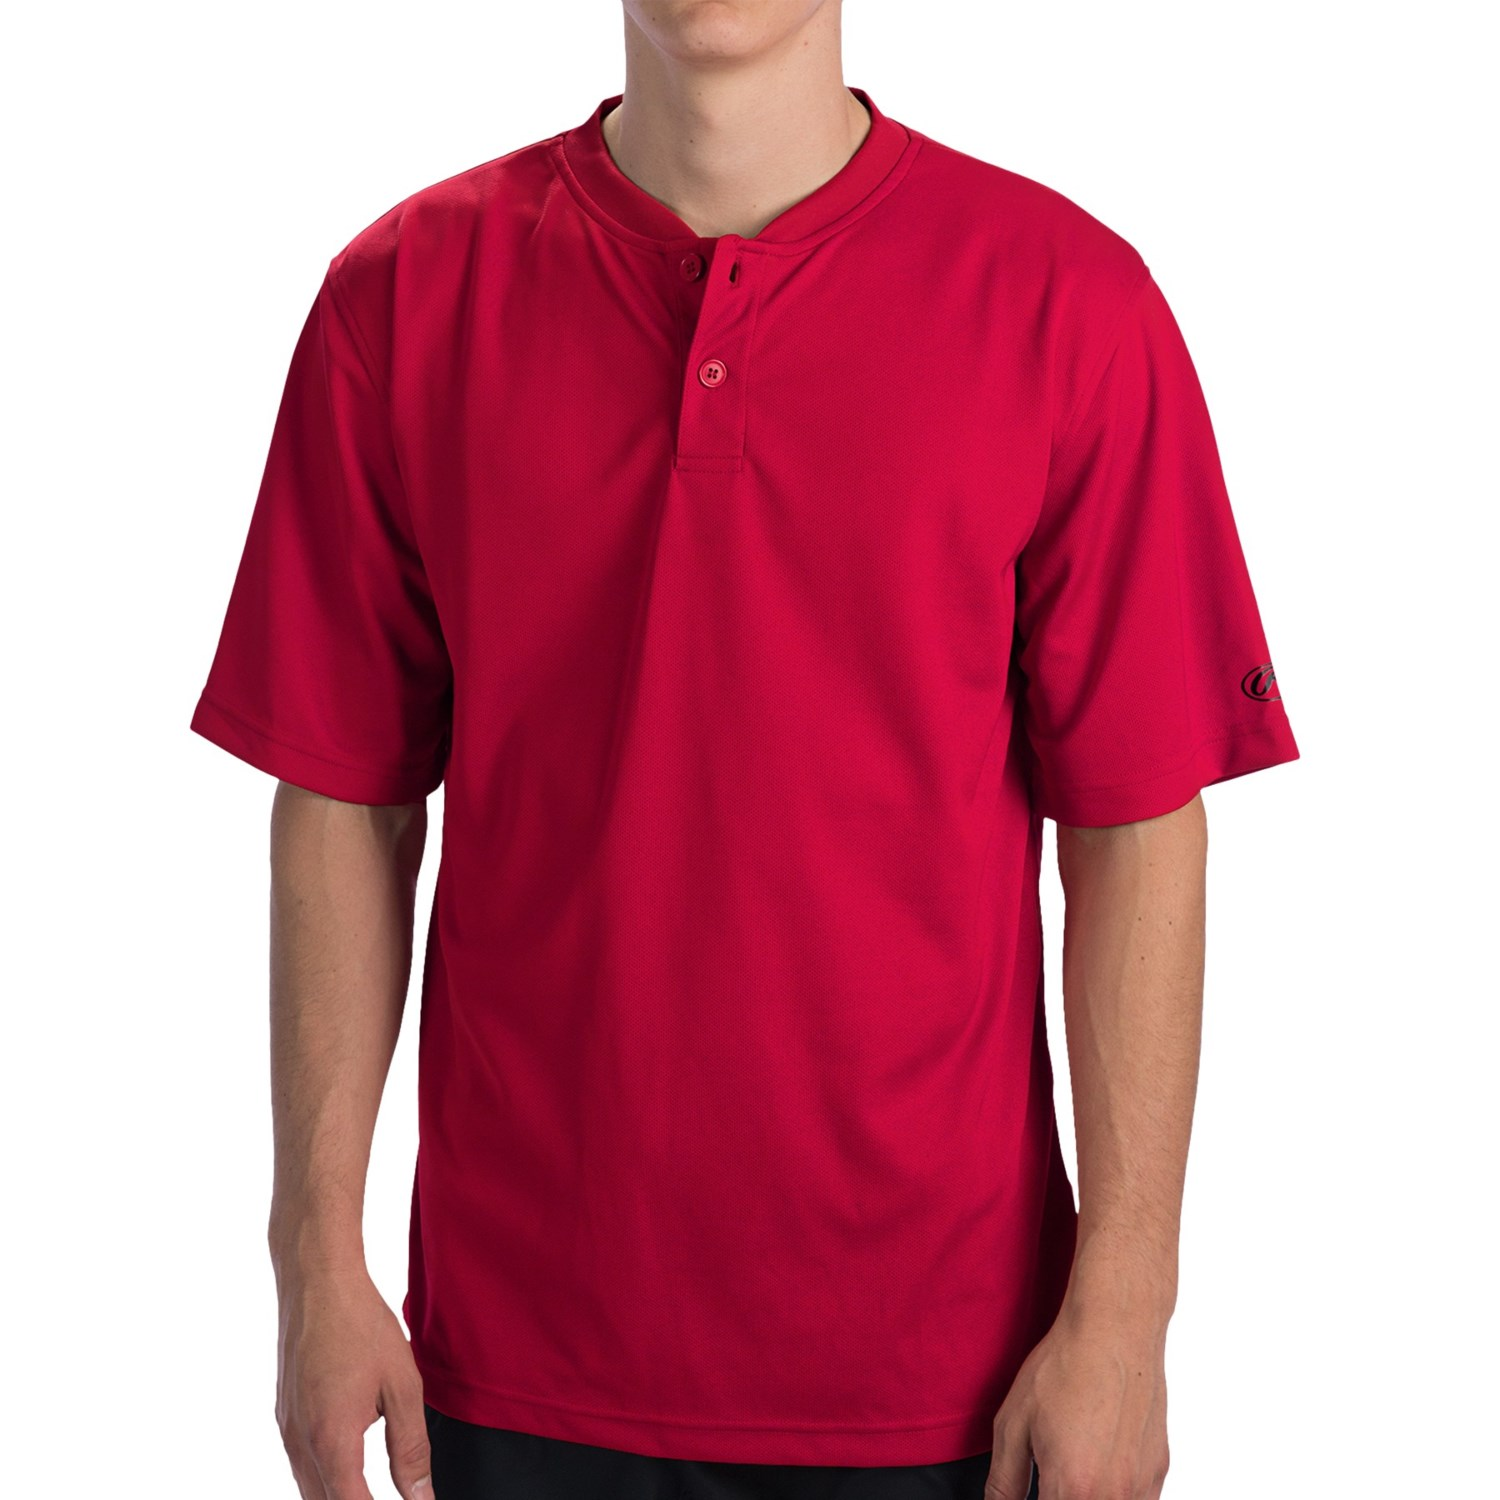 Shop today for Short Sleeve Henley shirts like Men's Short Sleeve Henley shirts and Women's Short Sleeve Henley shirts at Macy's.